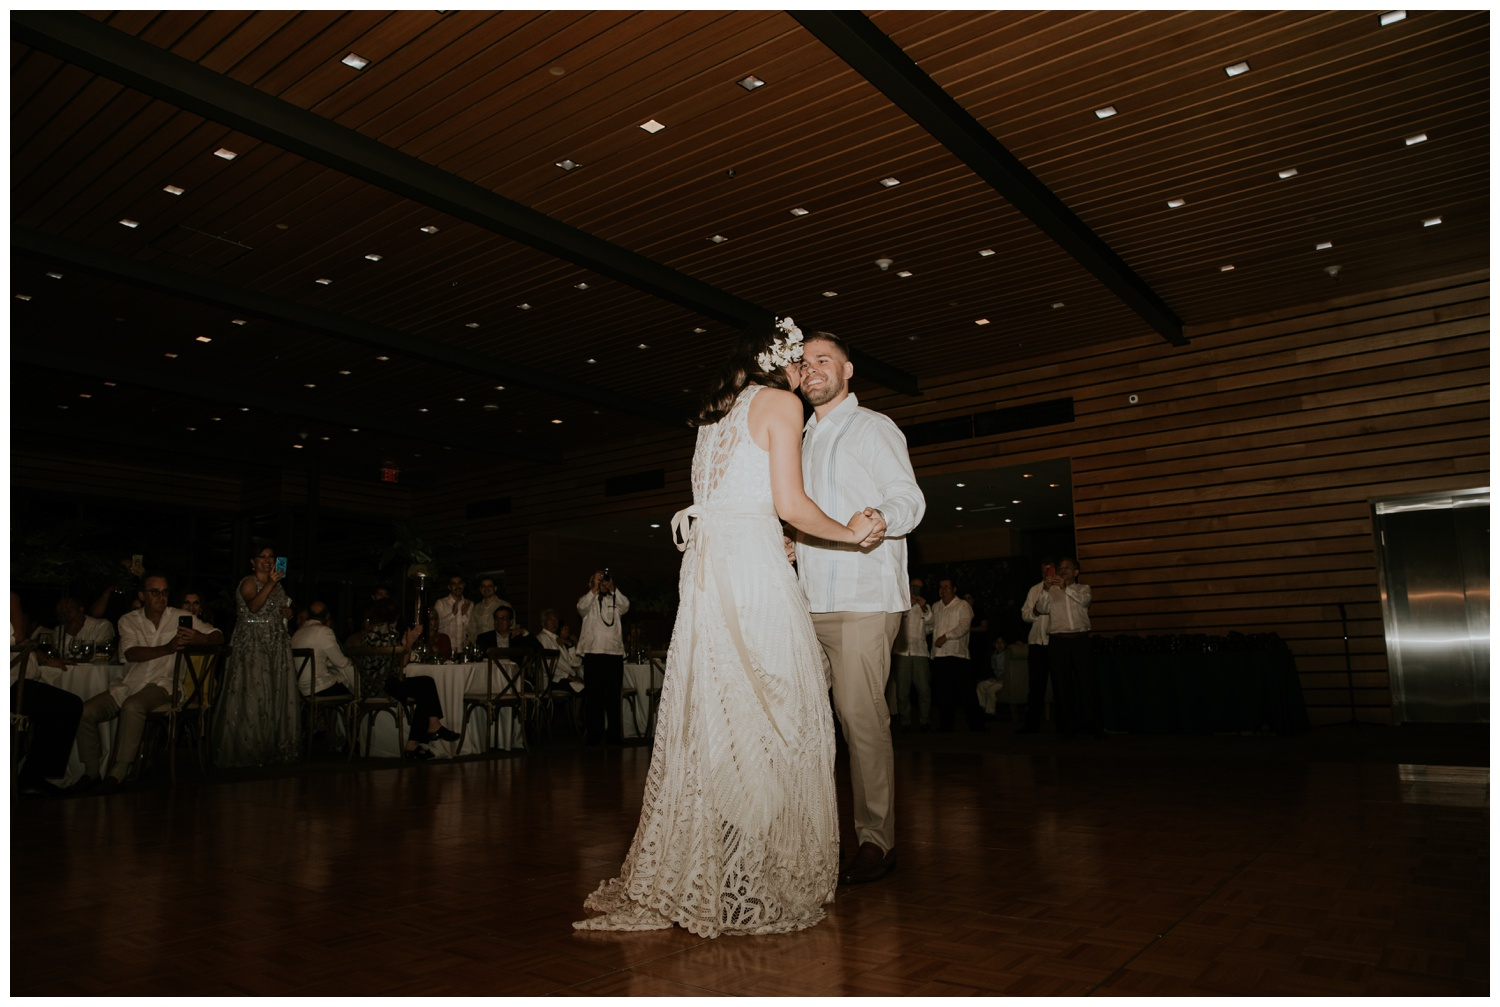 Ana + Sean || Jack Guenther Pavilion at the Briscoe Wedding San Antonio, Texas (Joshua and Parisa – Contista Productions)_0093.jpg